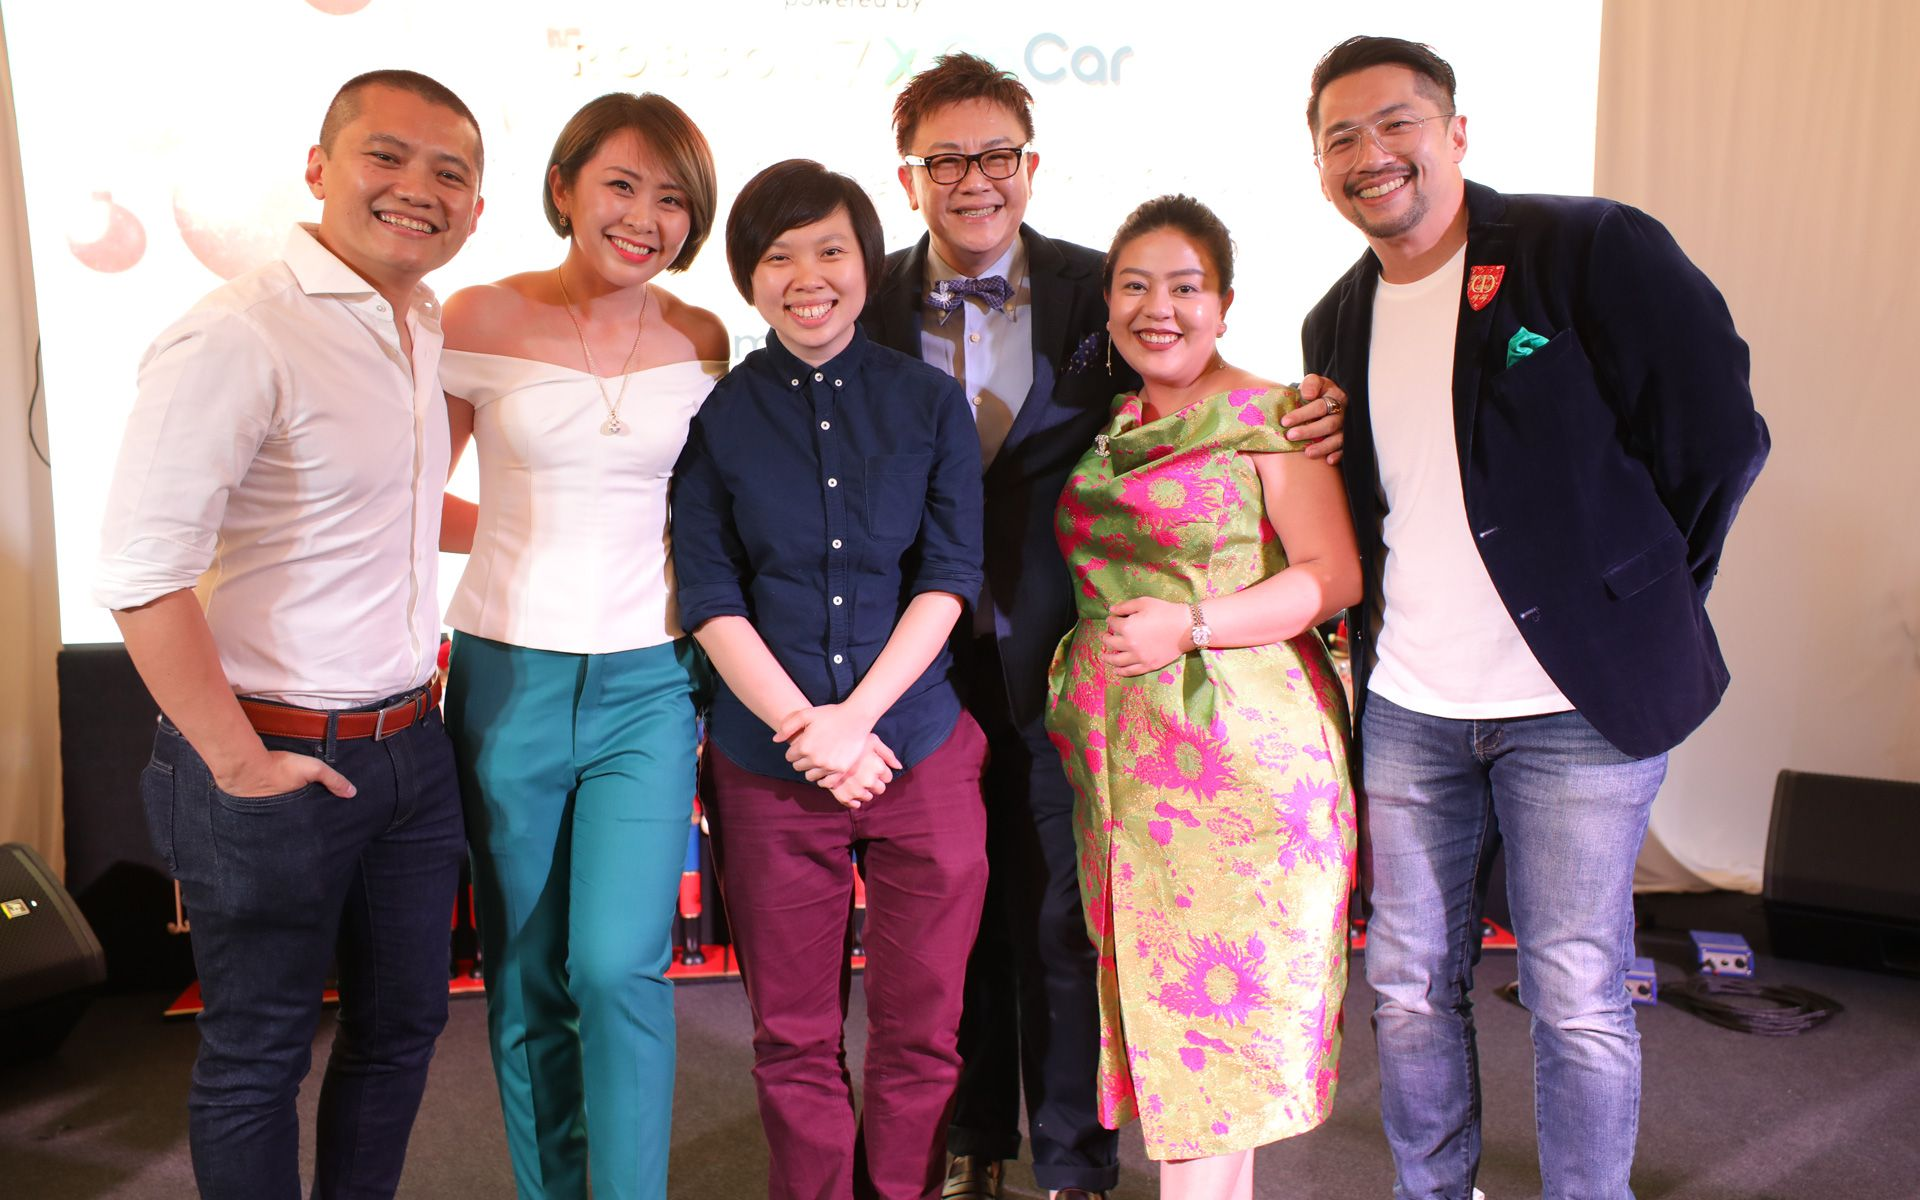 Alan Cheah, Lim Ai San, Kim Lim, Peter Lum, Tan Yih Ling and Cyrus Chin